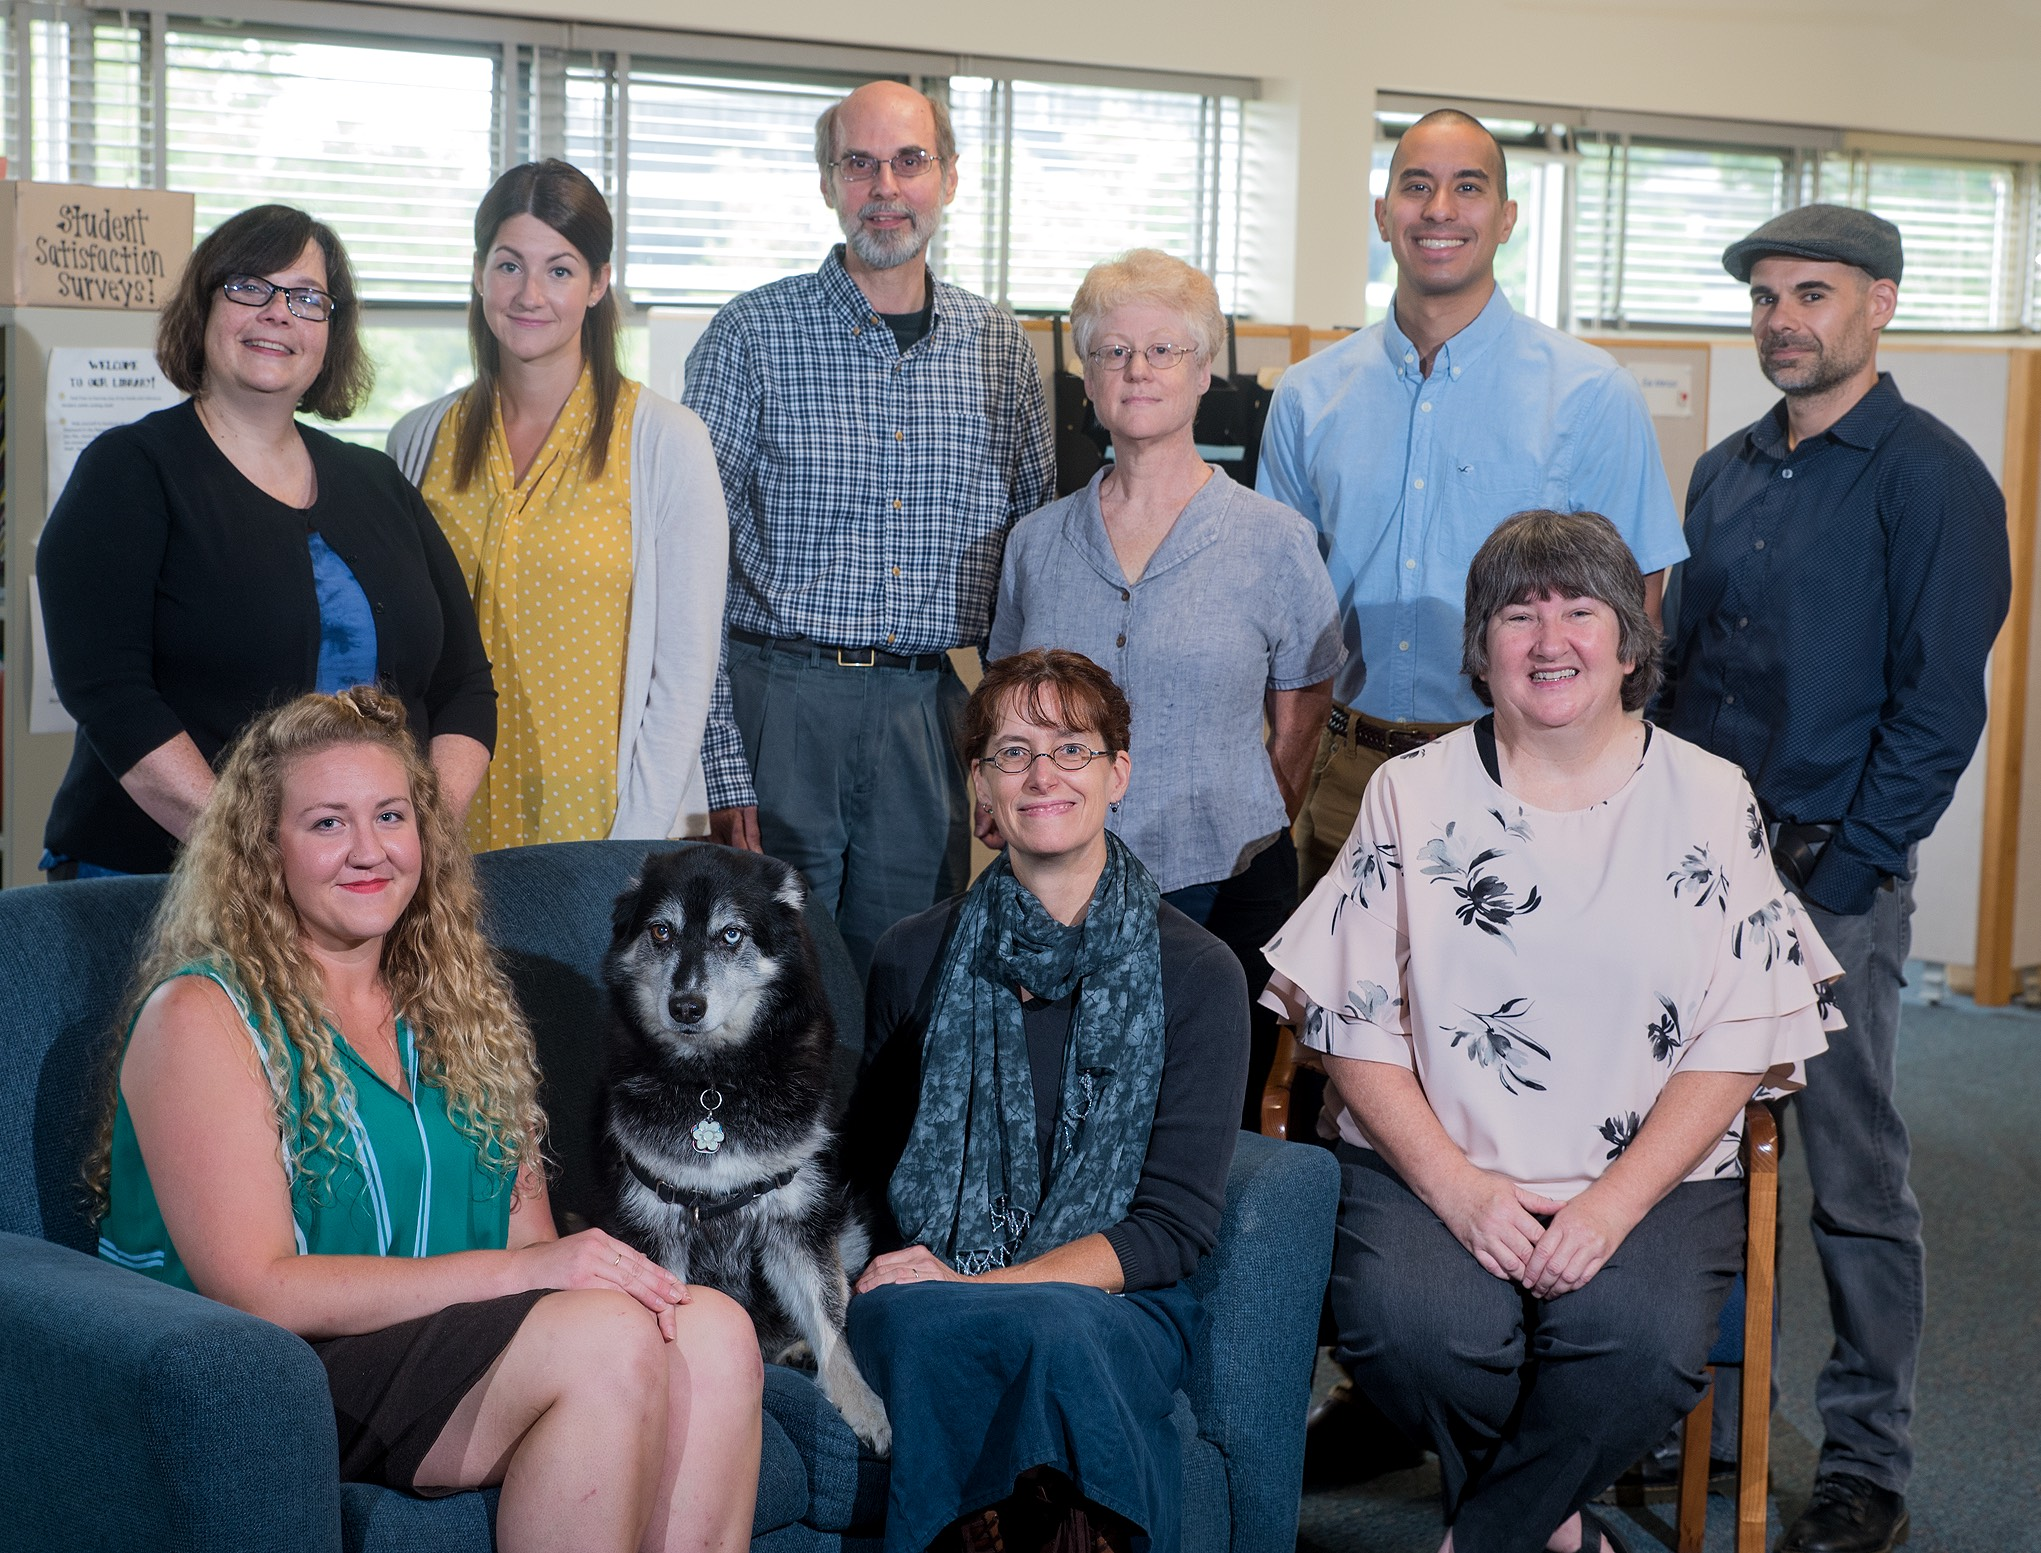 Group photo of TLC staff positioned around the office couch. Top row (left to right): Esa, Christina, Mark, Jeanine, Chris, and Ray. Bottom row (left to right): Amy, Sona the dog, Jen, and Teresa.